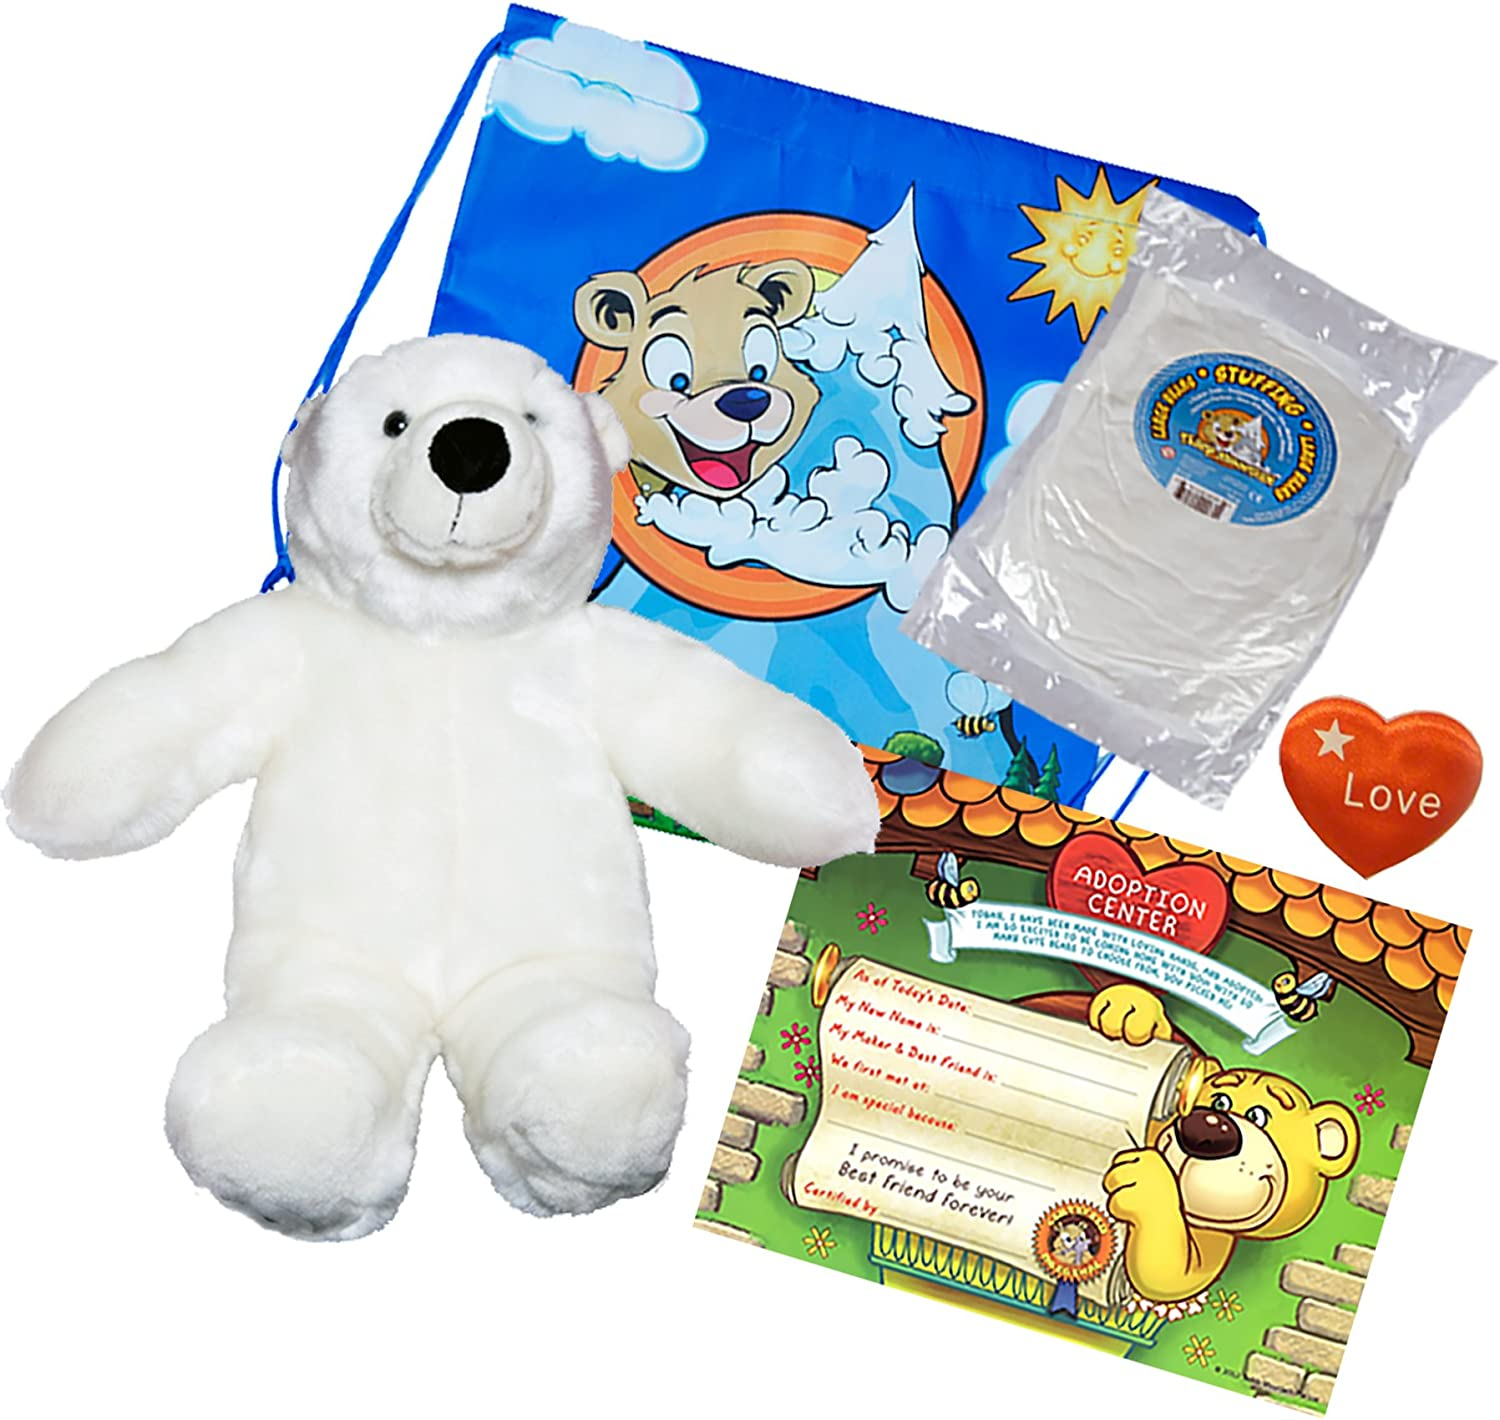 Record Your Own Plush 8 inch Nanook the Polar Bear Ready to Love in a Few Easy